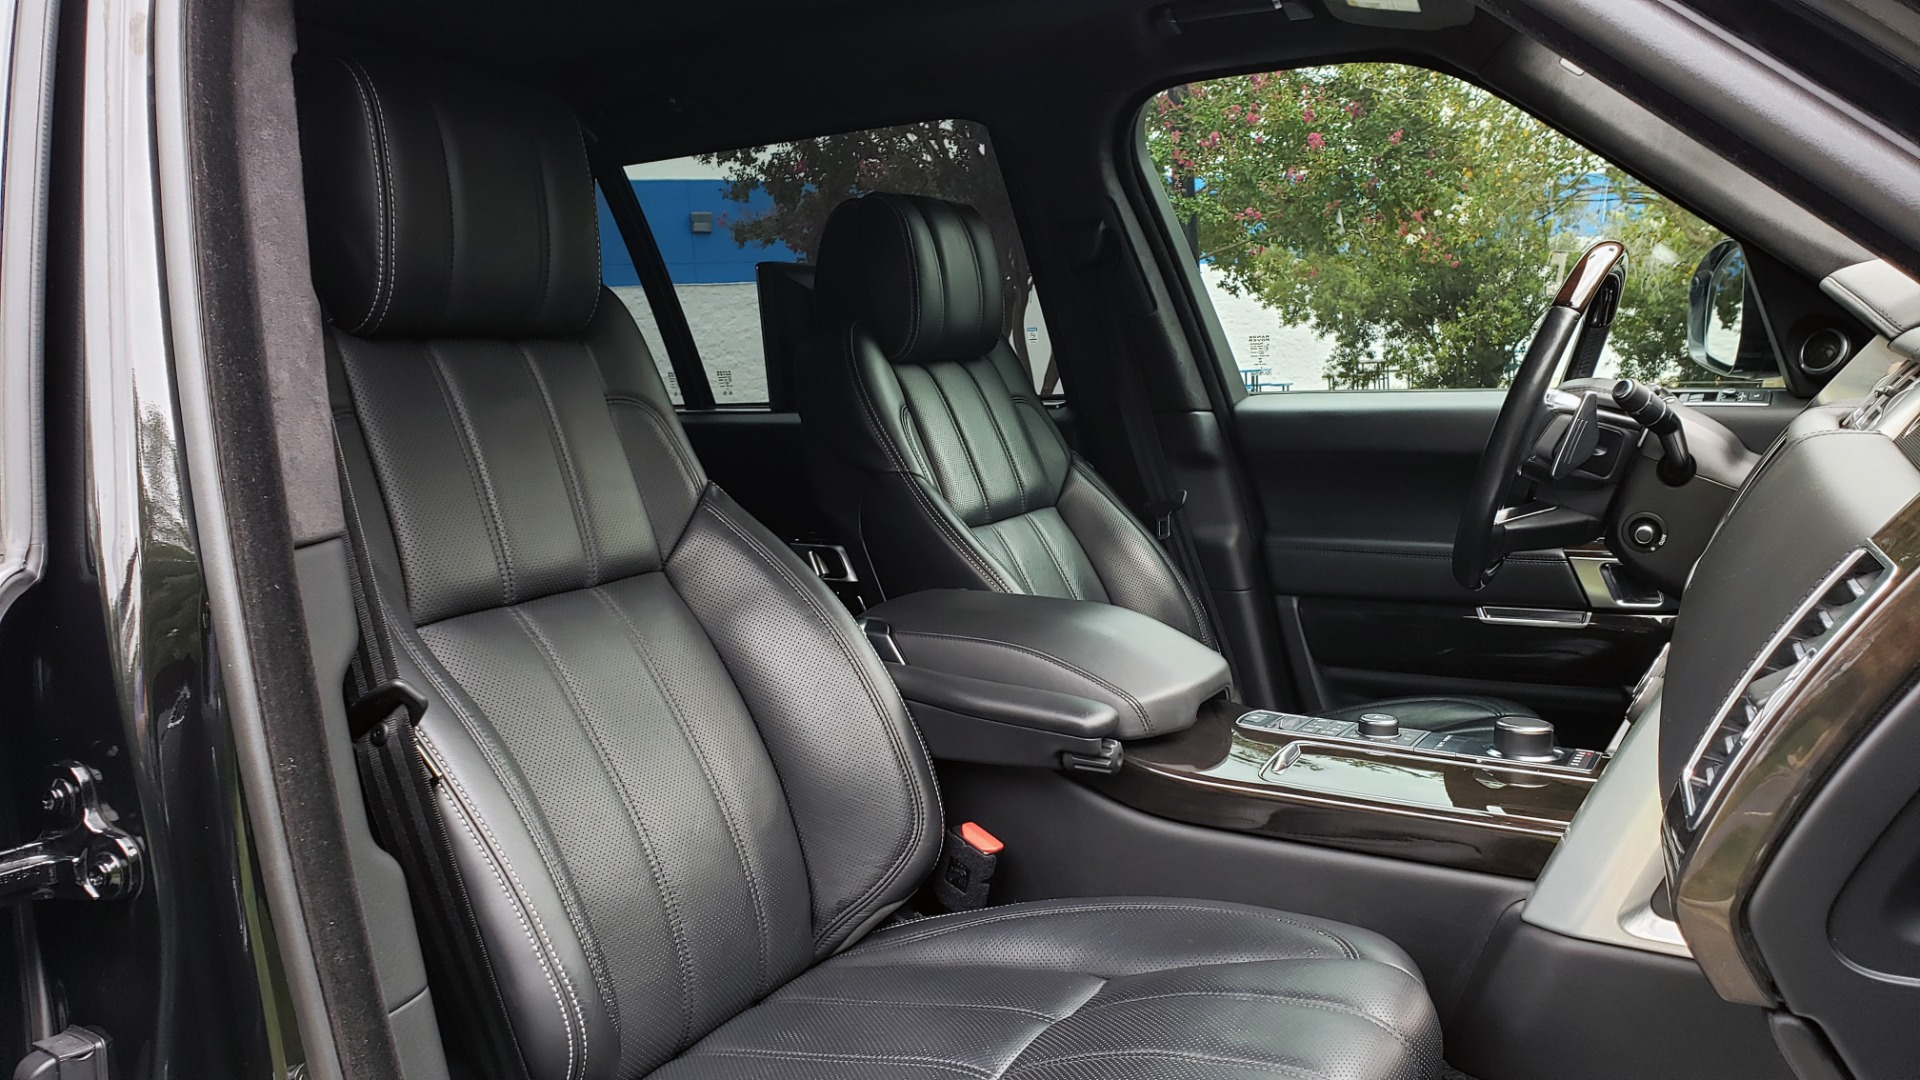 Used 2016 Land Rover RANGE ROVER AUTOBIOGRAPHY / SC-V8 / LWB / PANO-ROOF / NAV / MERIDIAN / ENT / REARVIEW for sale Sold at Formula Imports in Charlotte NC 28227 85